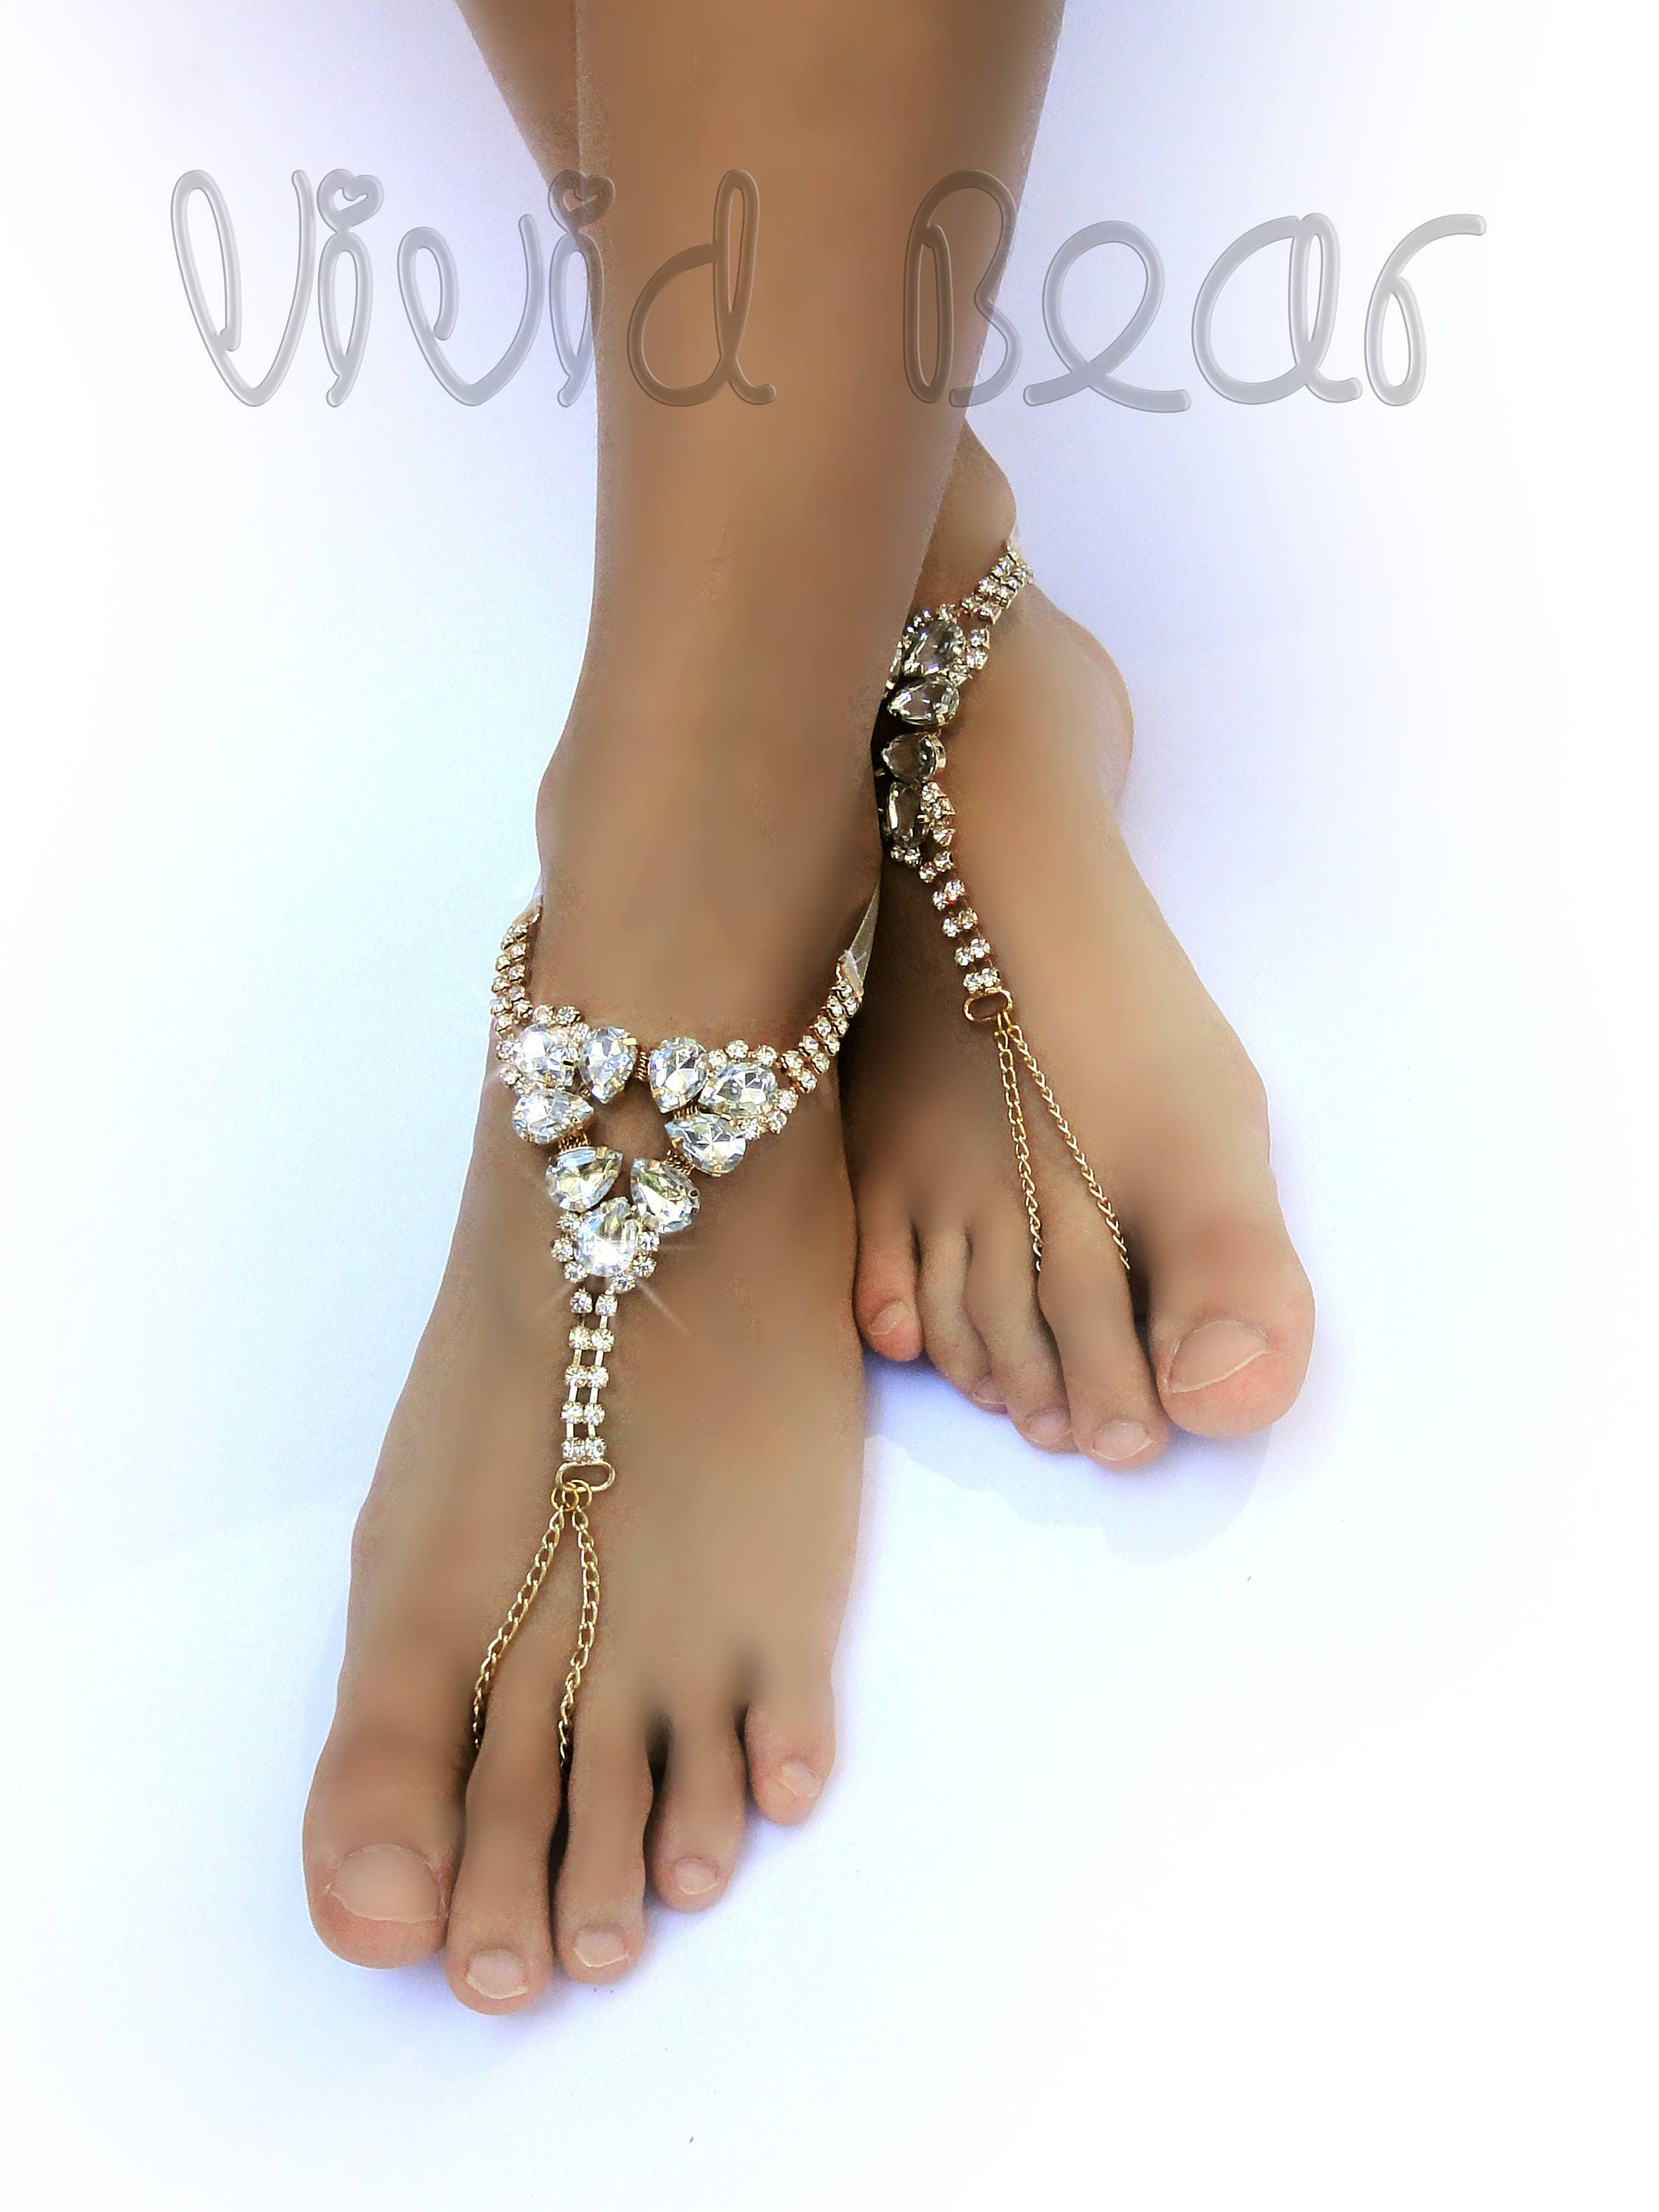 anklet wikihow make elastic bracelets pictures how to with step ankle